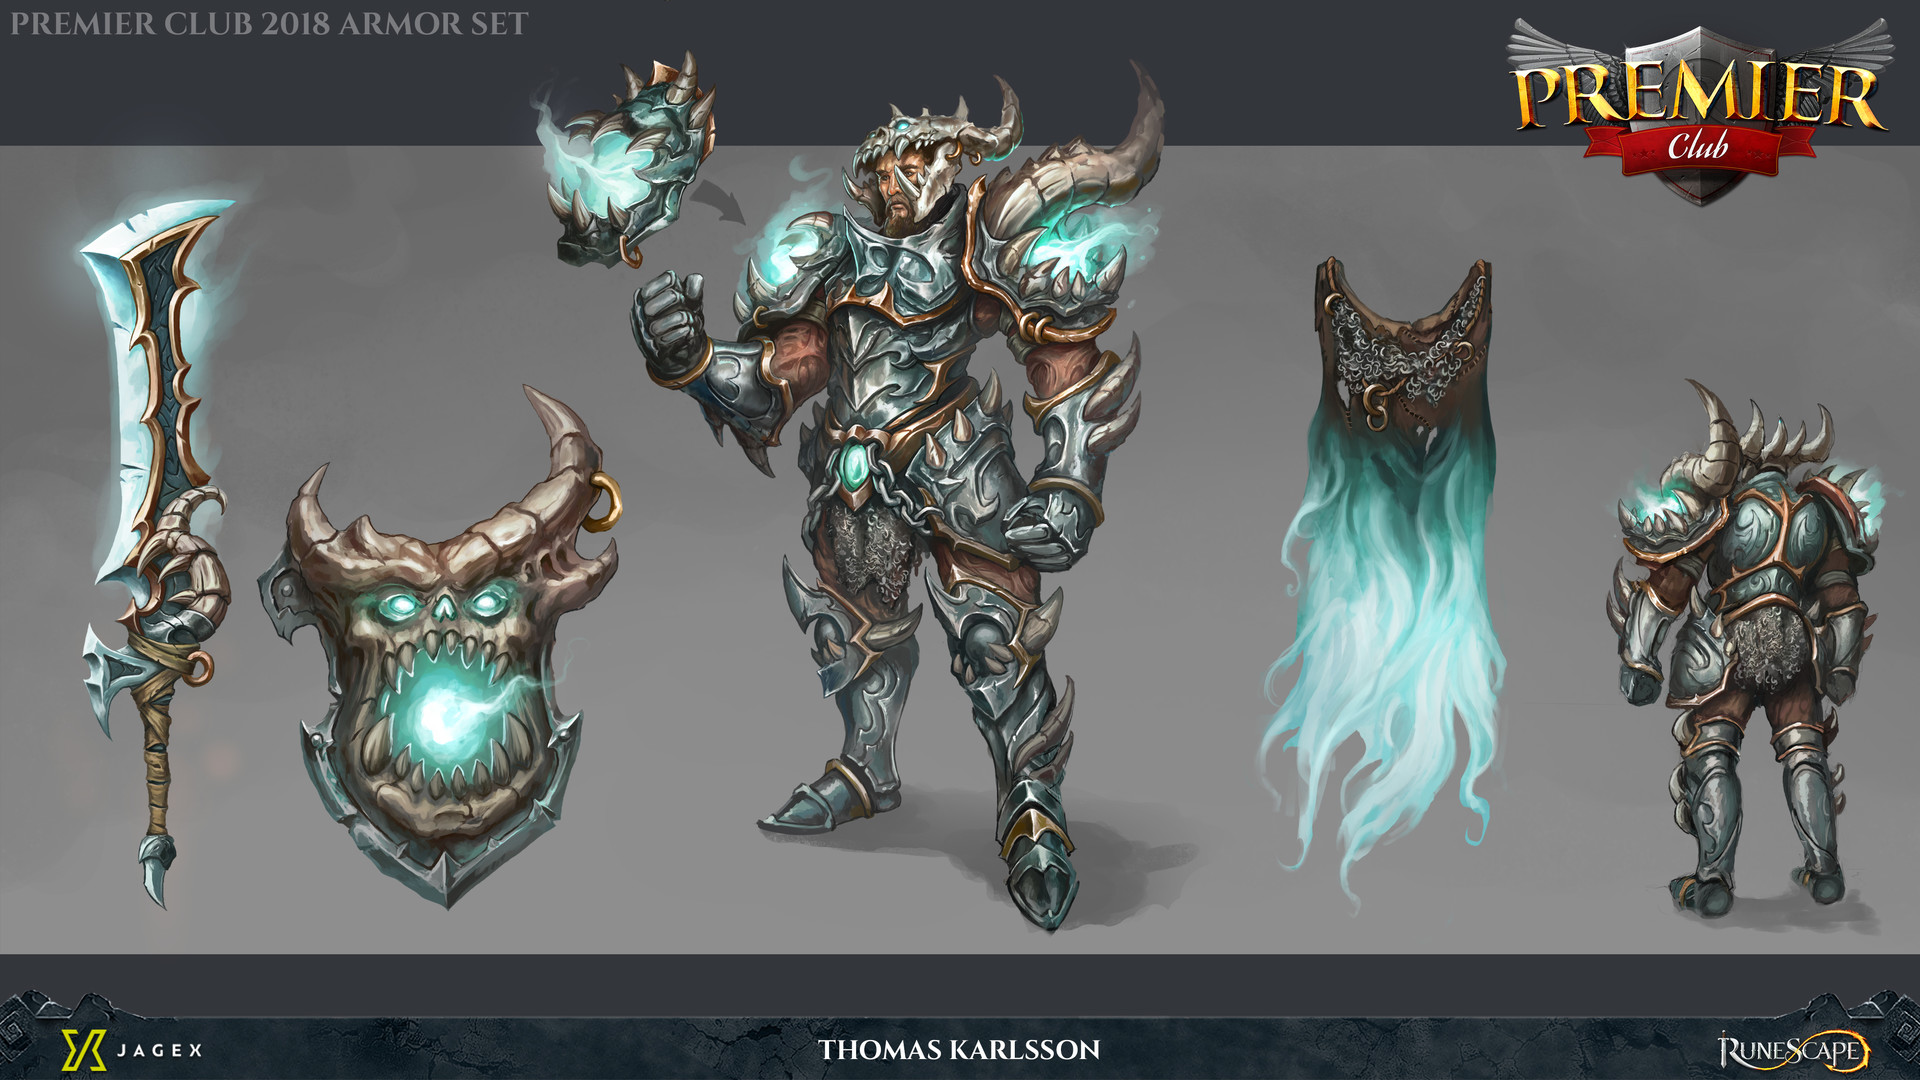 Artstation Runescape Premier Club 2018 Armor Set Thomas Karlsson